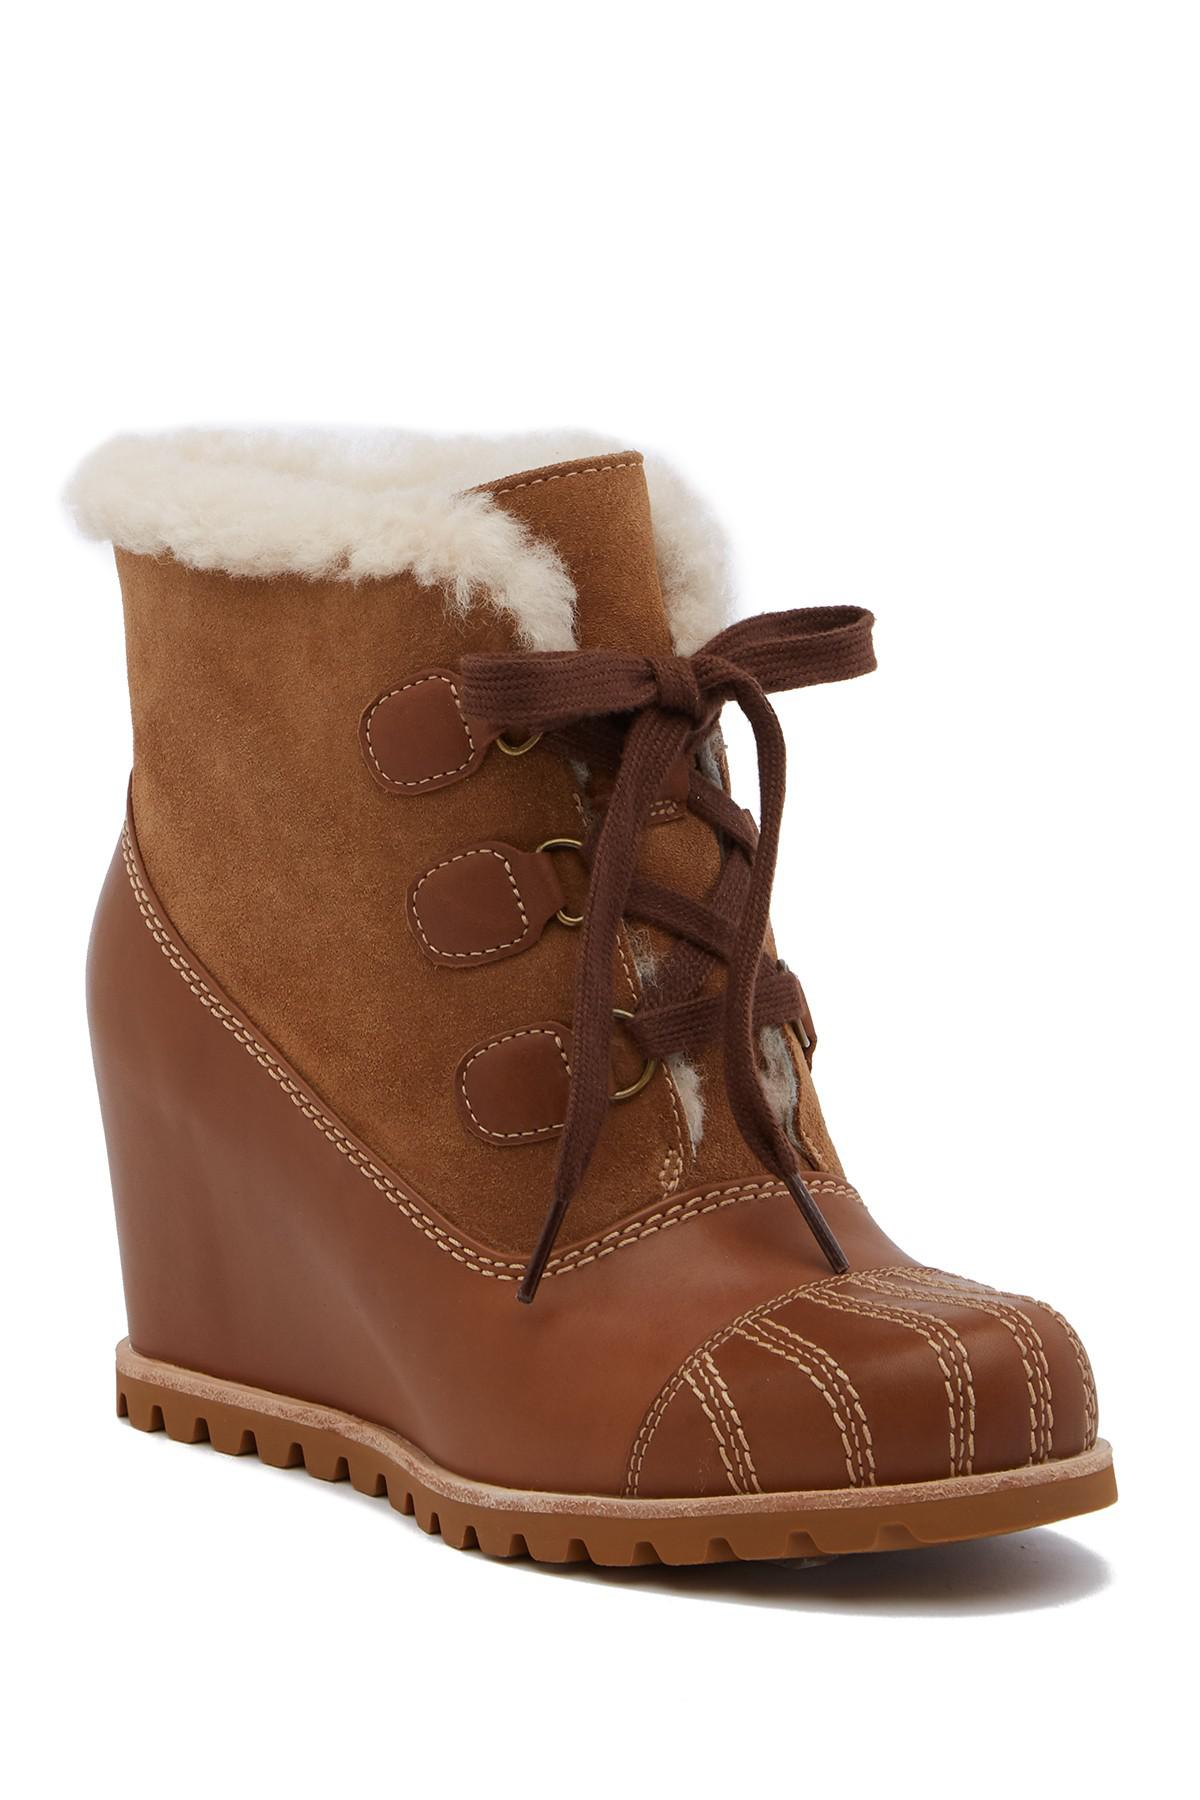 UGG Alasdair Genuine Shearling Wedge Bootie 1S73poAPB9